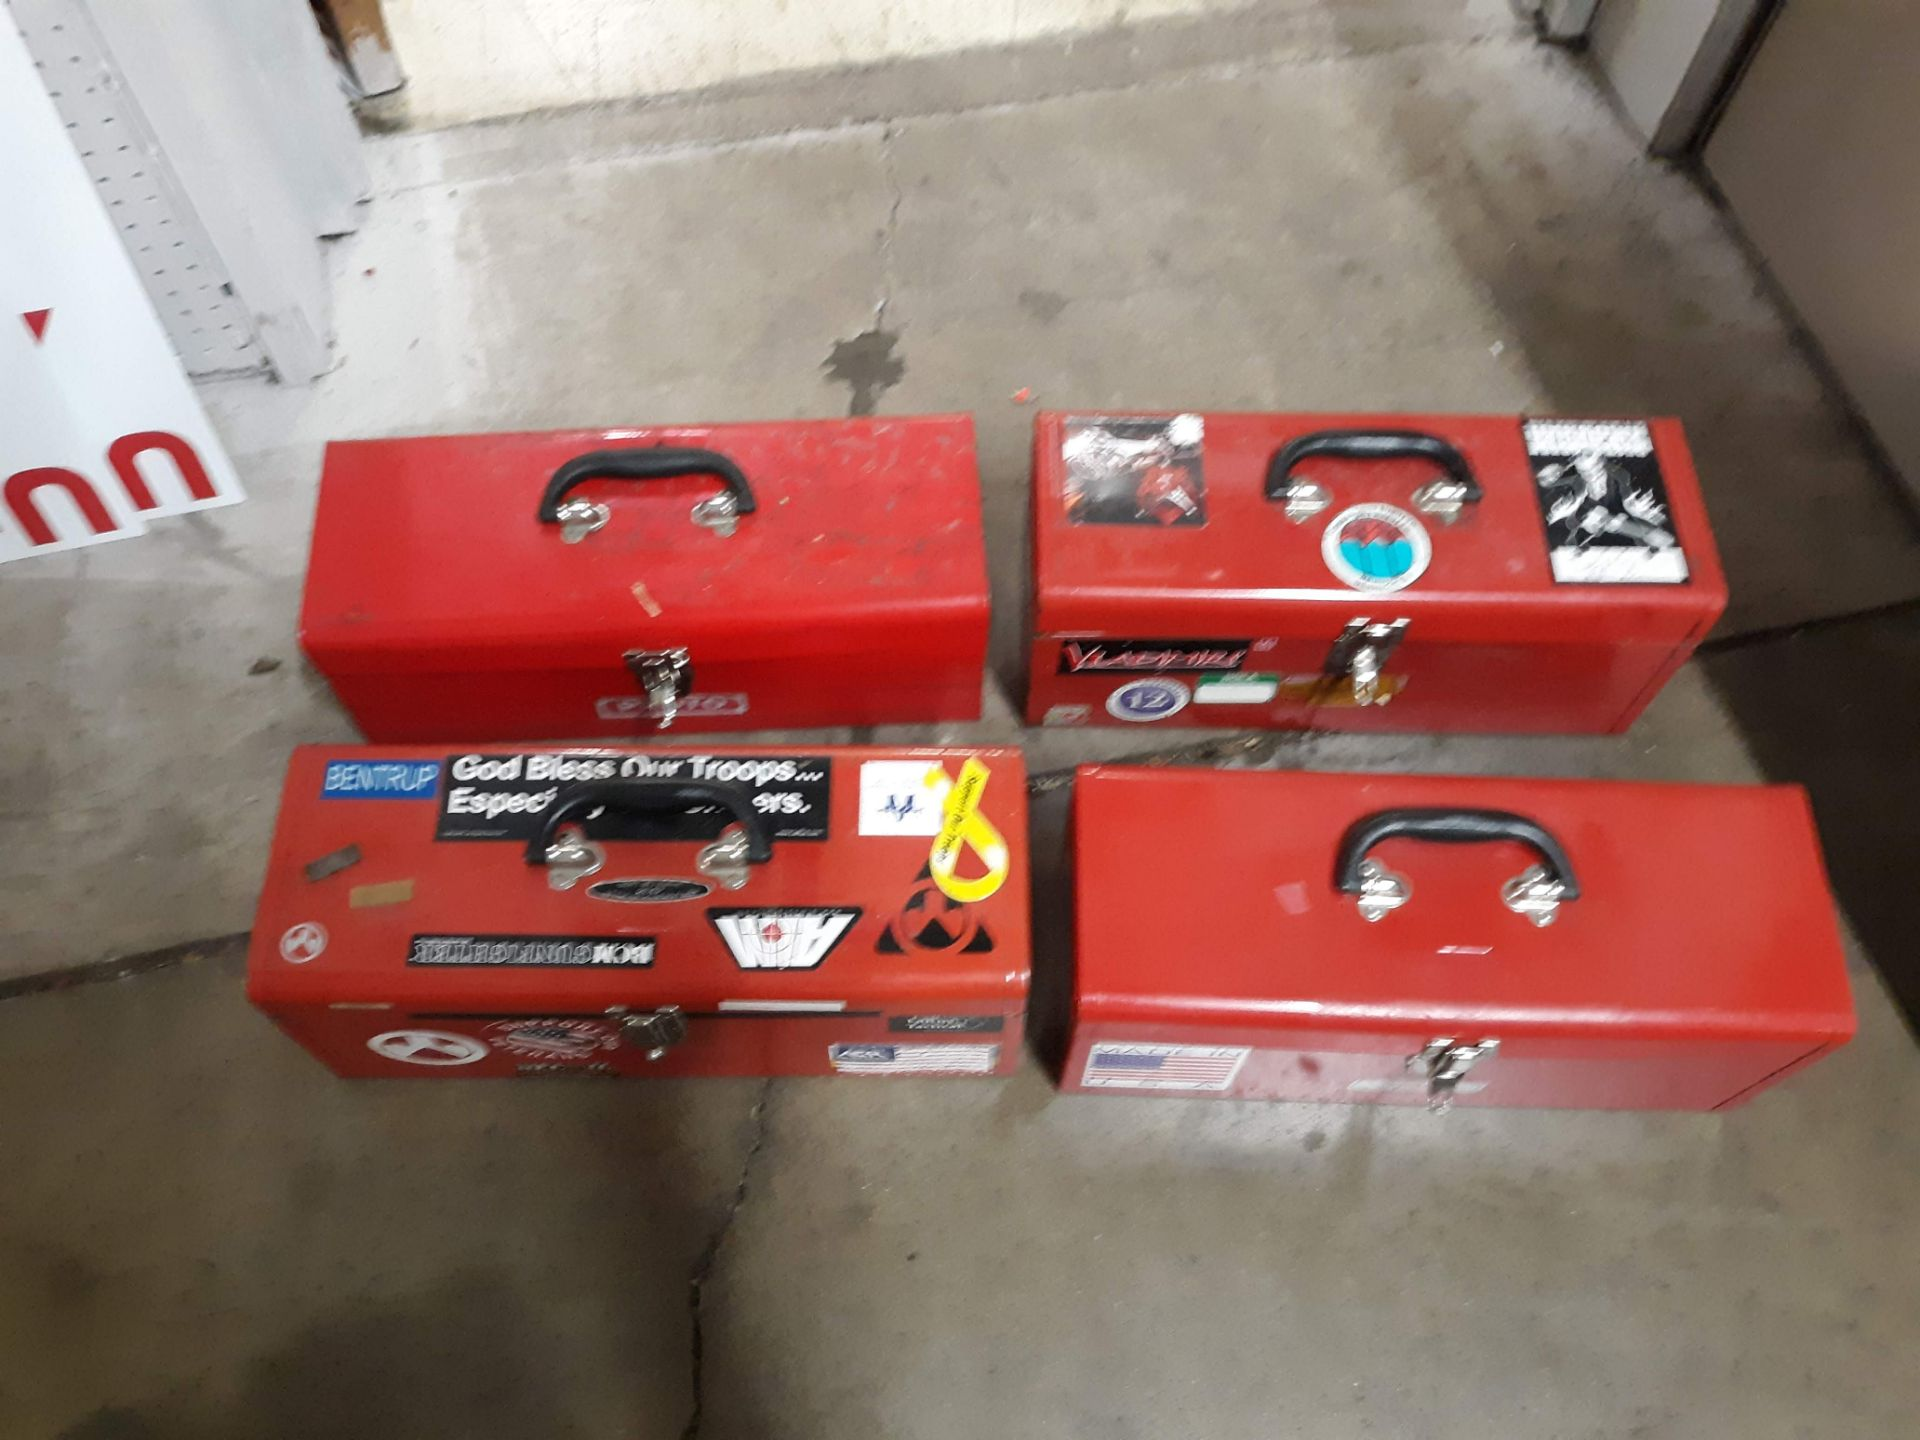 Lot 1108 - (4) TOOL BOXES (LOCATED AT: 432 COUNCIL DRIVE, FORT WAYNE, IN 46825)